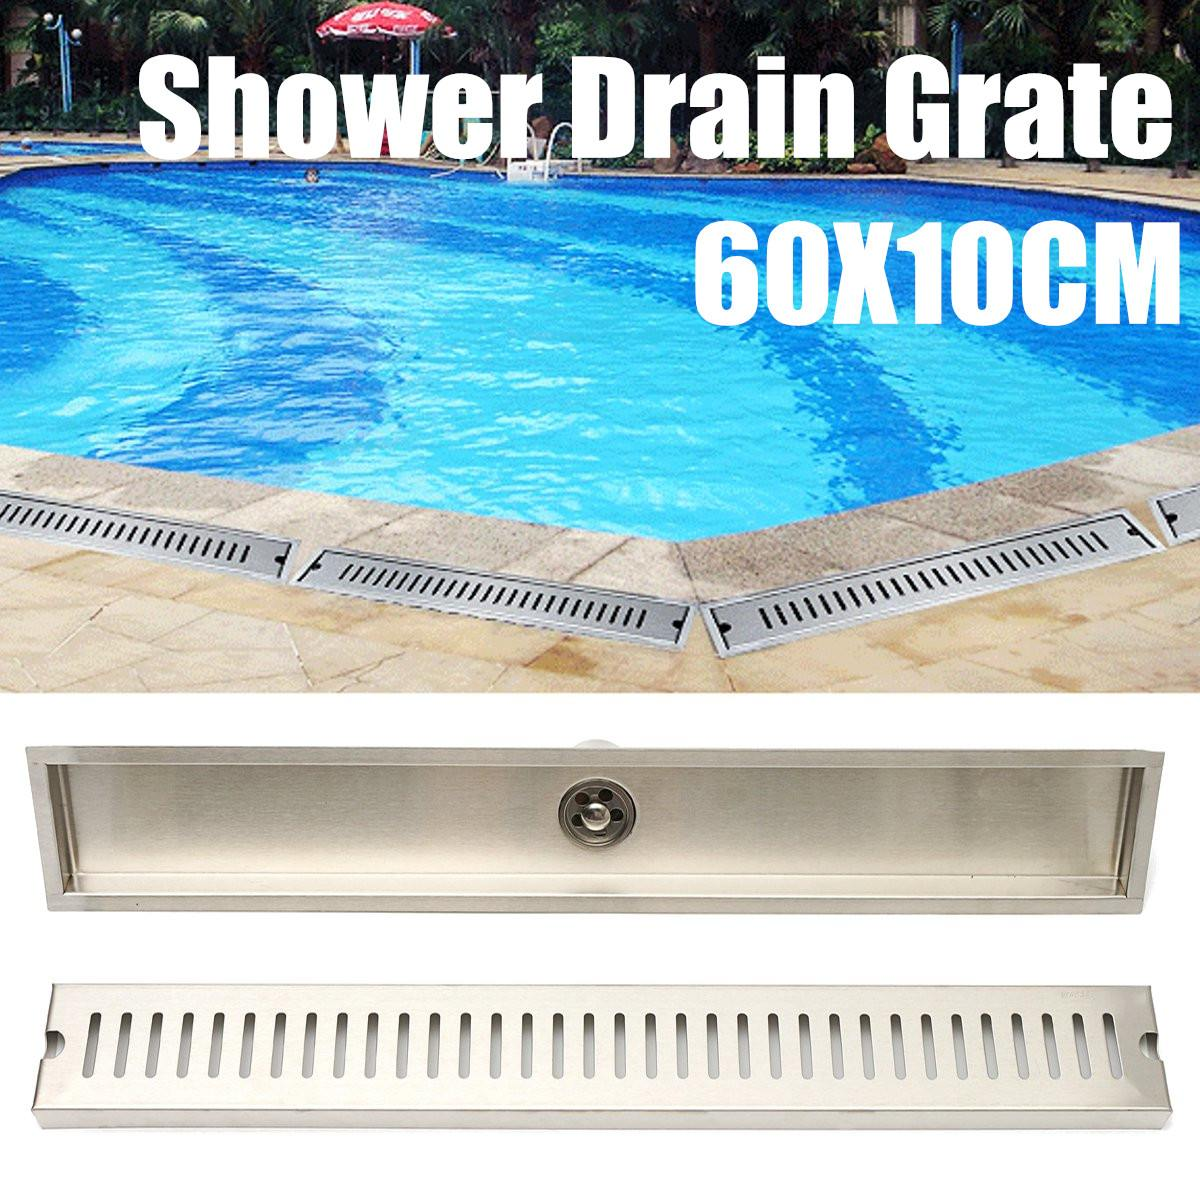 цена на 60x10CM Floor Drain Cover Rectangle 304 Stainless Steel Shower Drain Bathroom Floor Grate Drain Linear Floor Drain